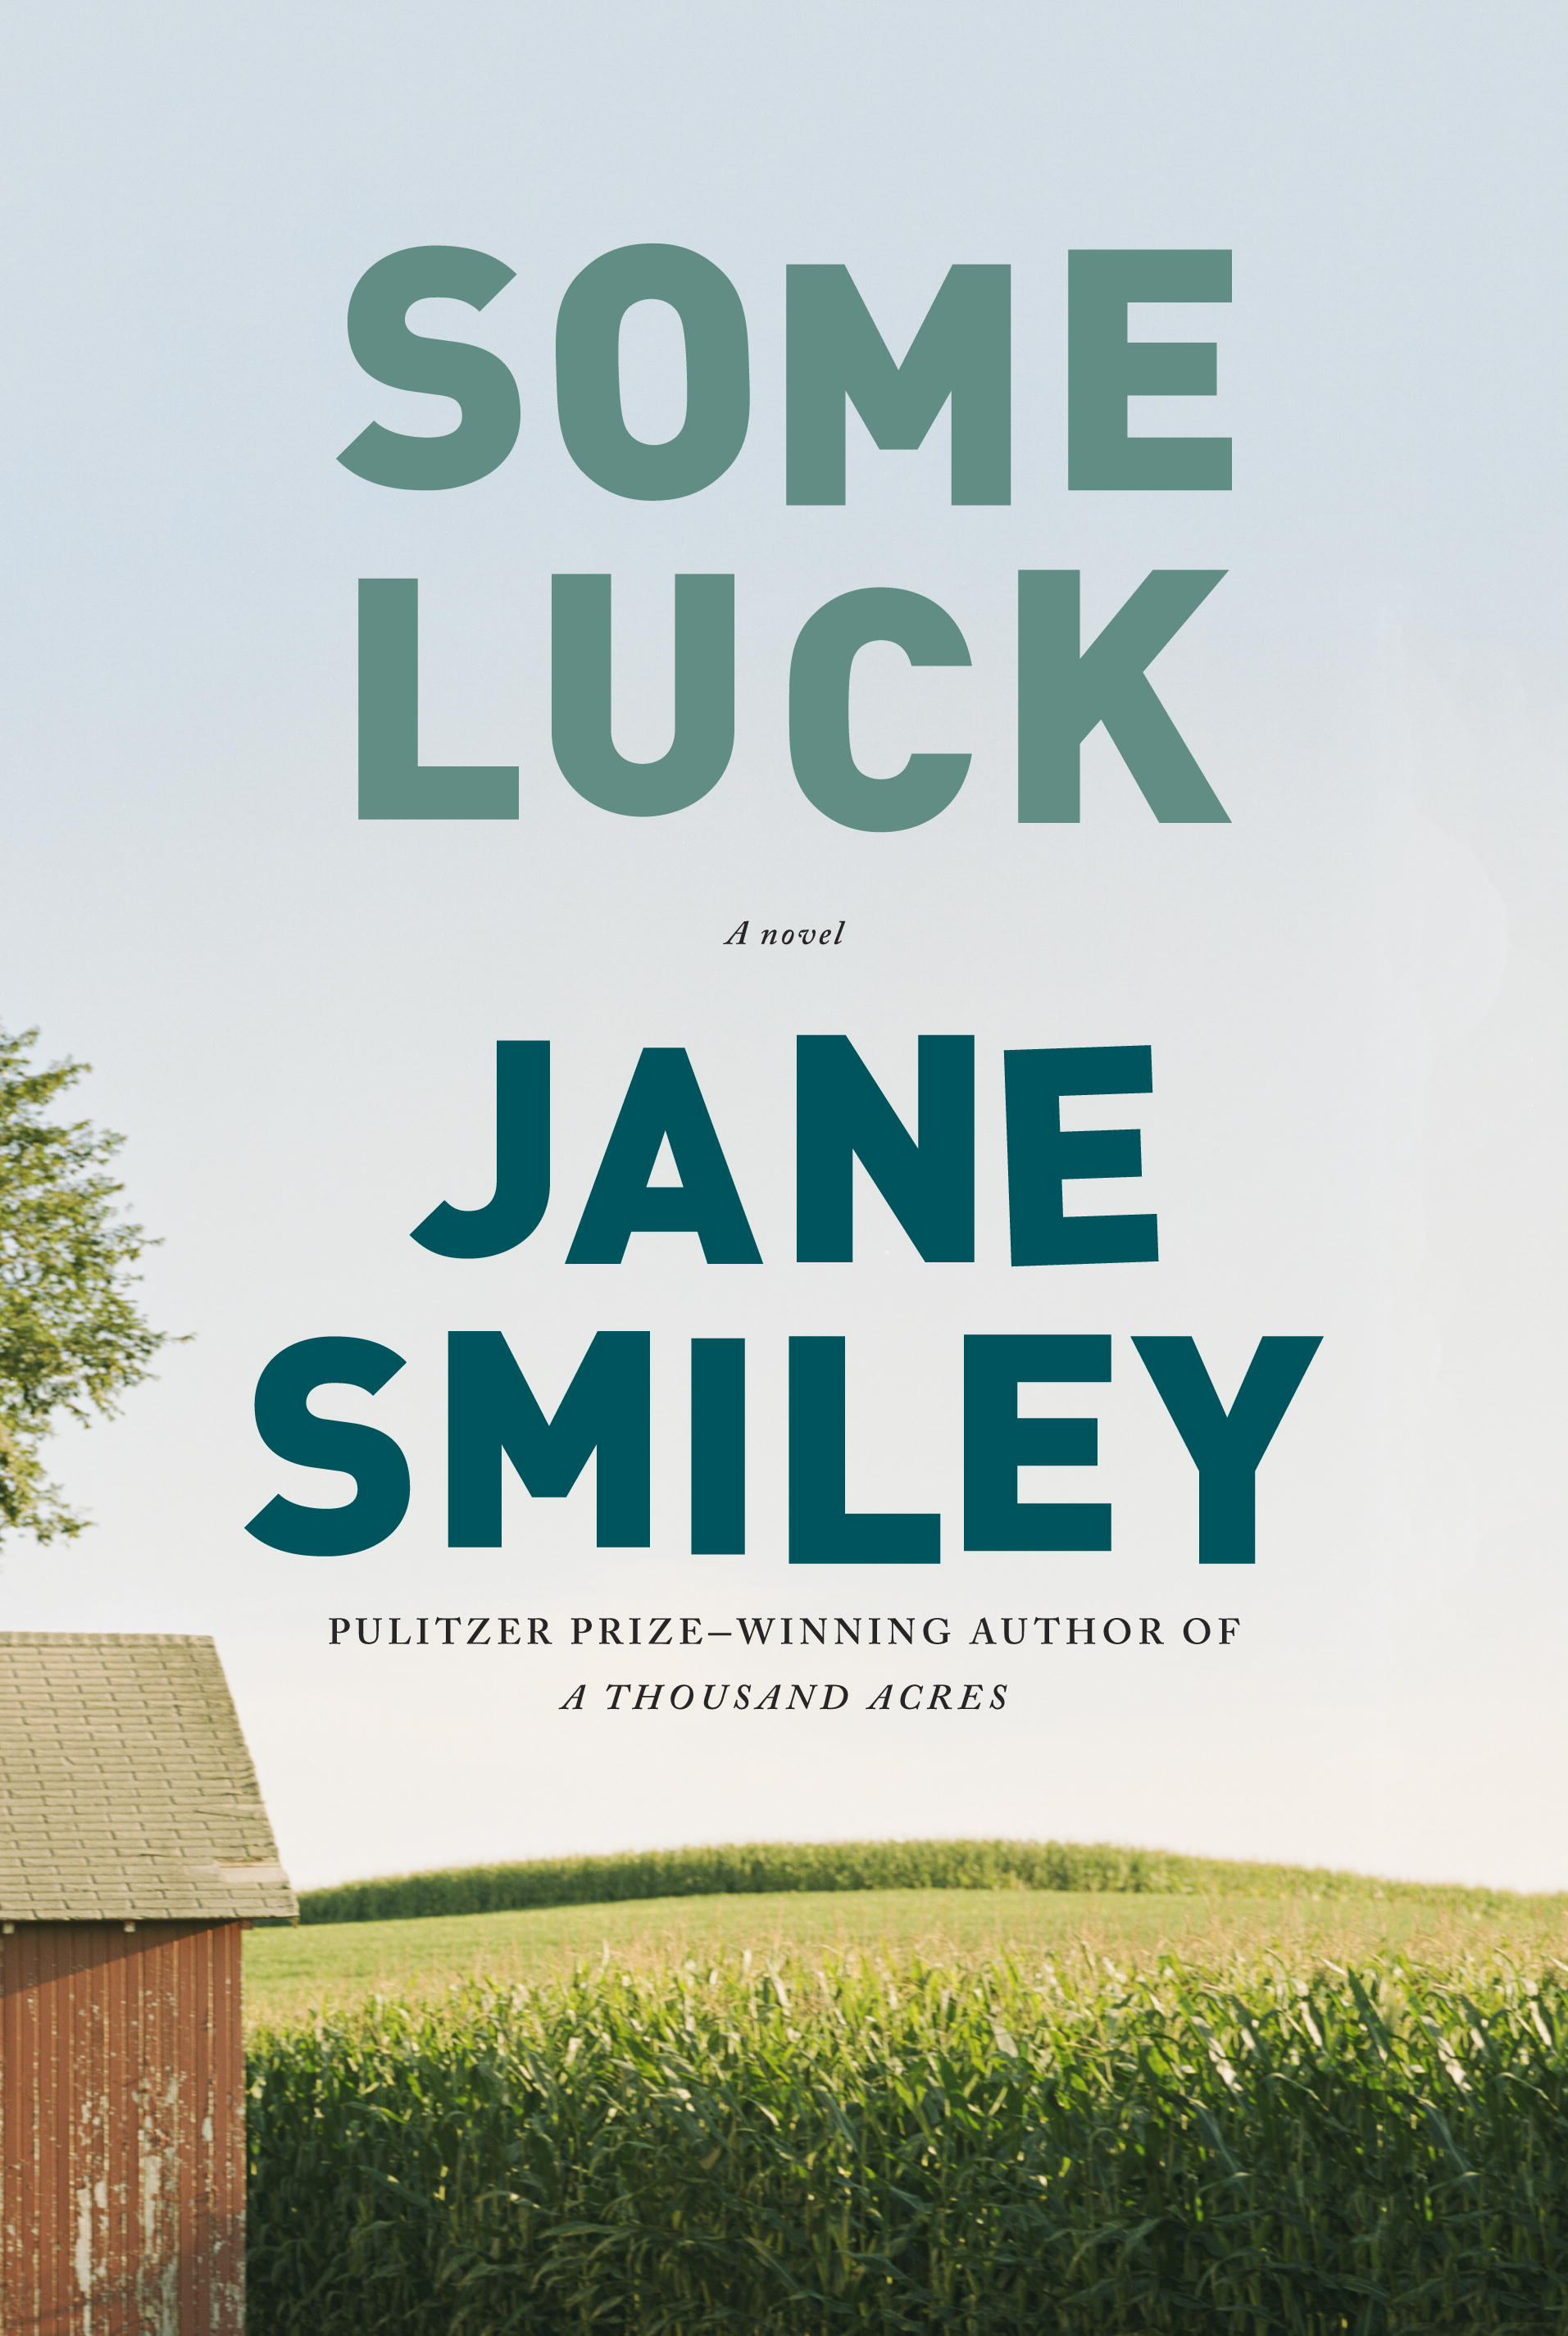 Some Luck by Jane Smiley.